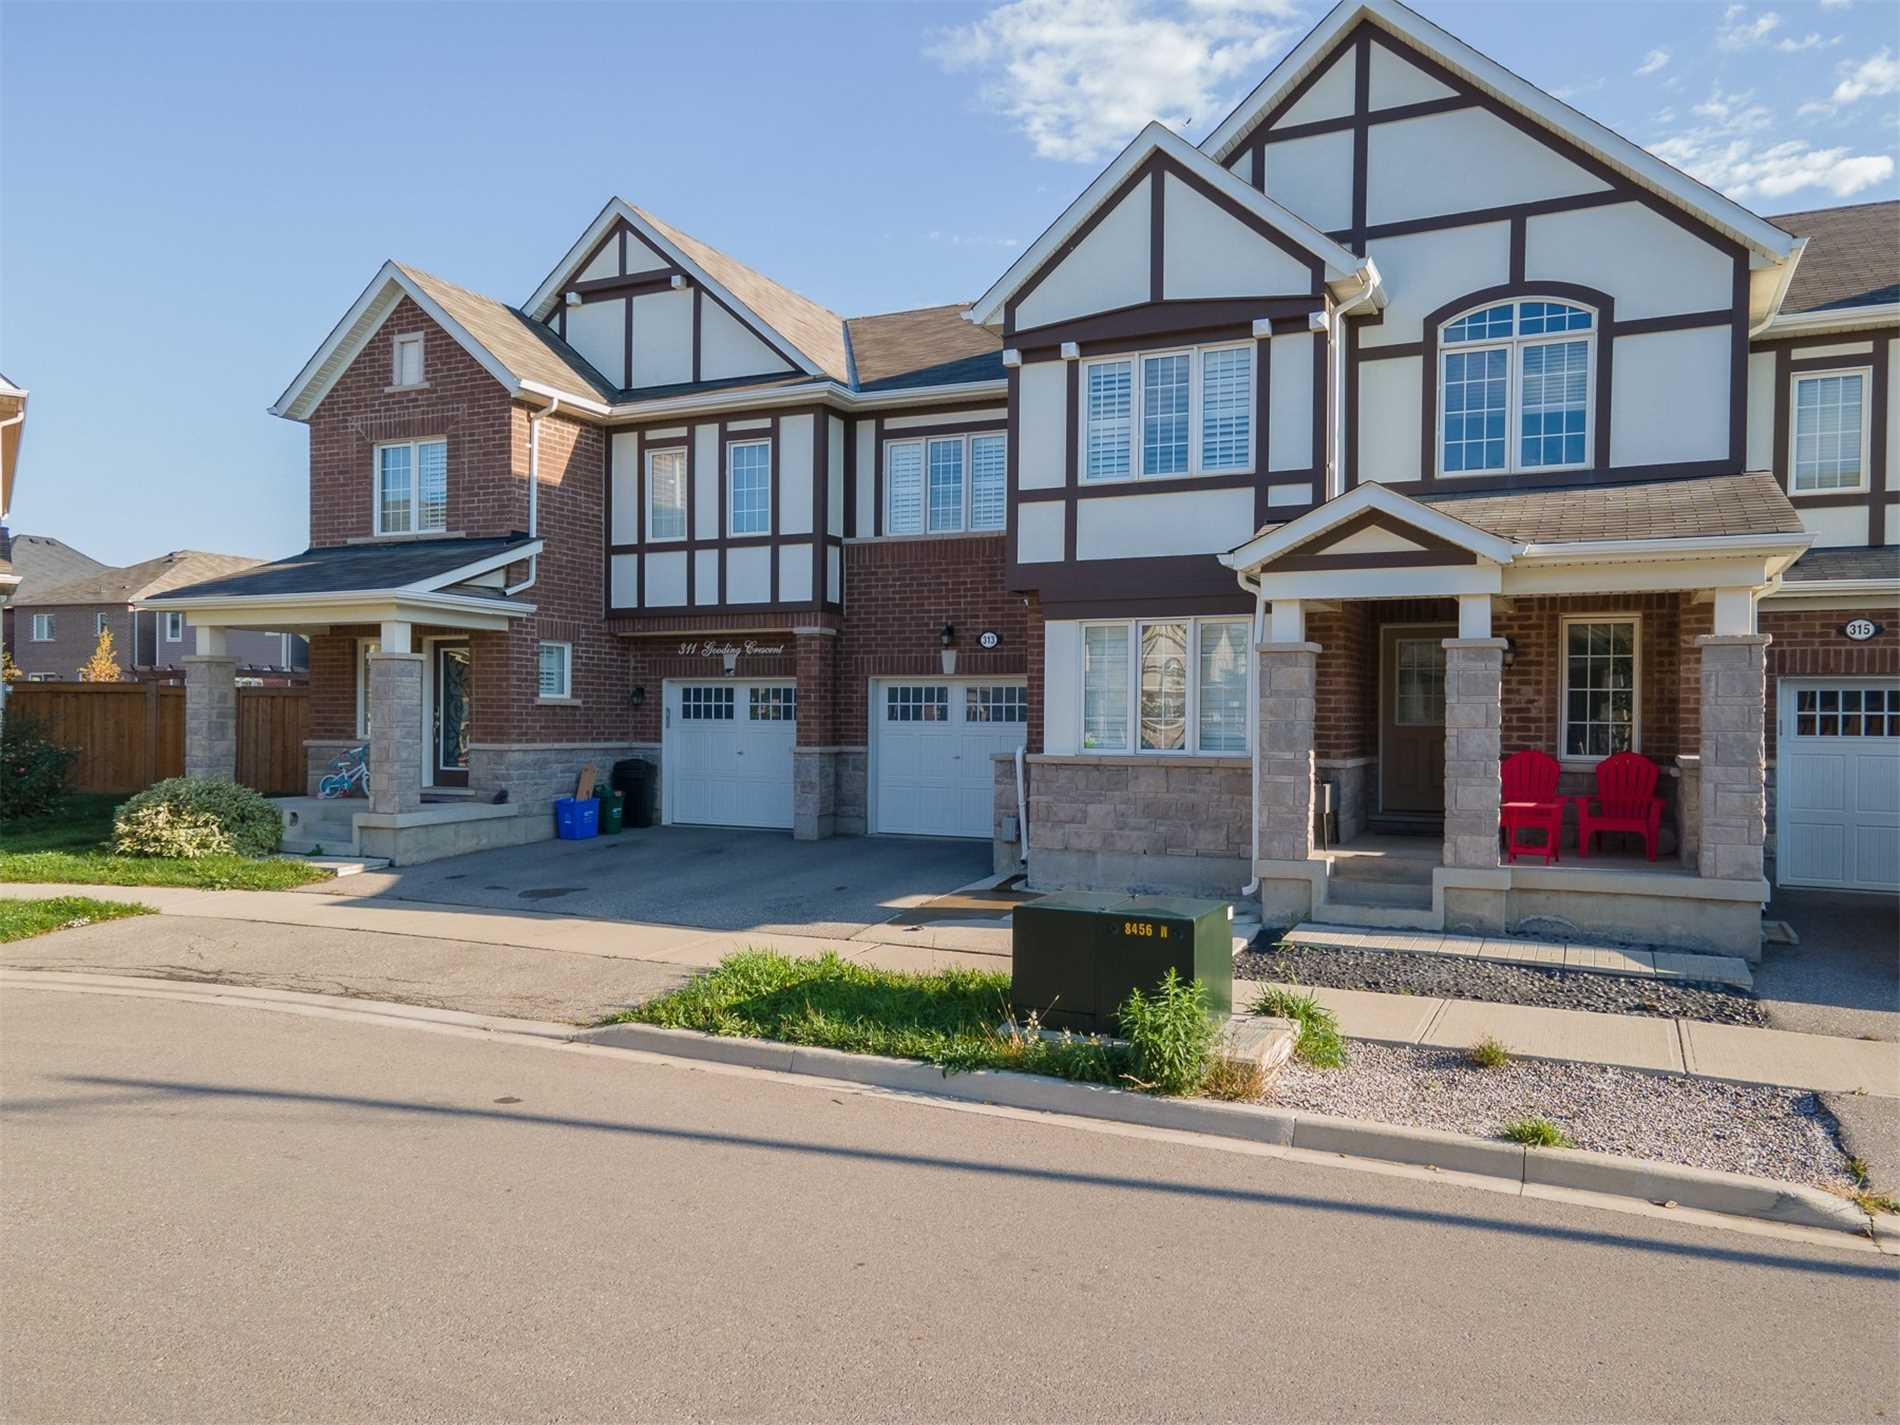 313 Gooding Cres - Ford Att/Row/Twnhouse for sale, 4 Bedrooms (W5401006) - #3